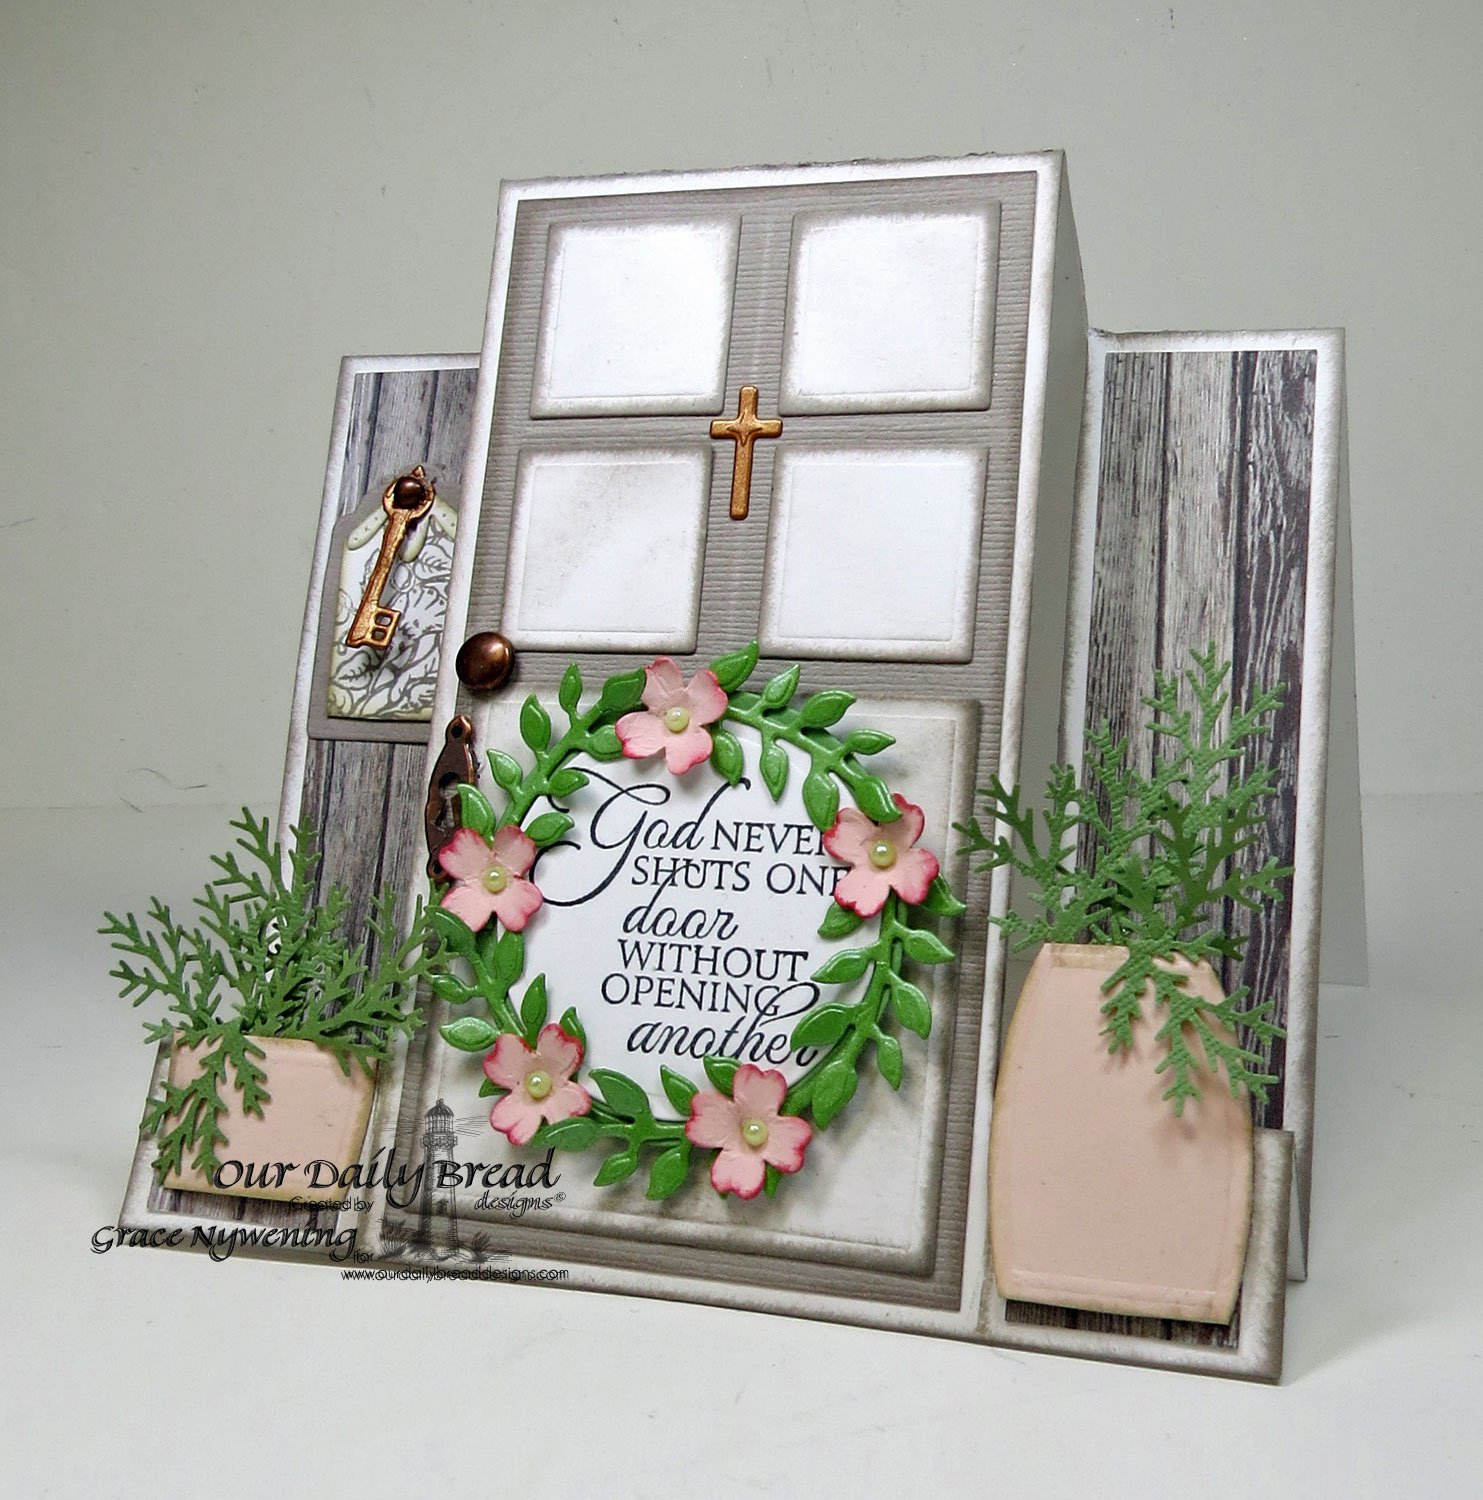 Stamps - Our Daily Bread Designs Key to Heaven, Glory, ODBD Custom Angel Wings Die, ODBD Custom Fancy Foliage Die, ODBD Custom Ornamental Crosses Die, ODBD Custom Recipe Card and Tags Die